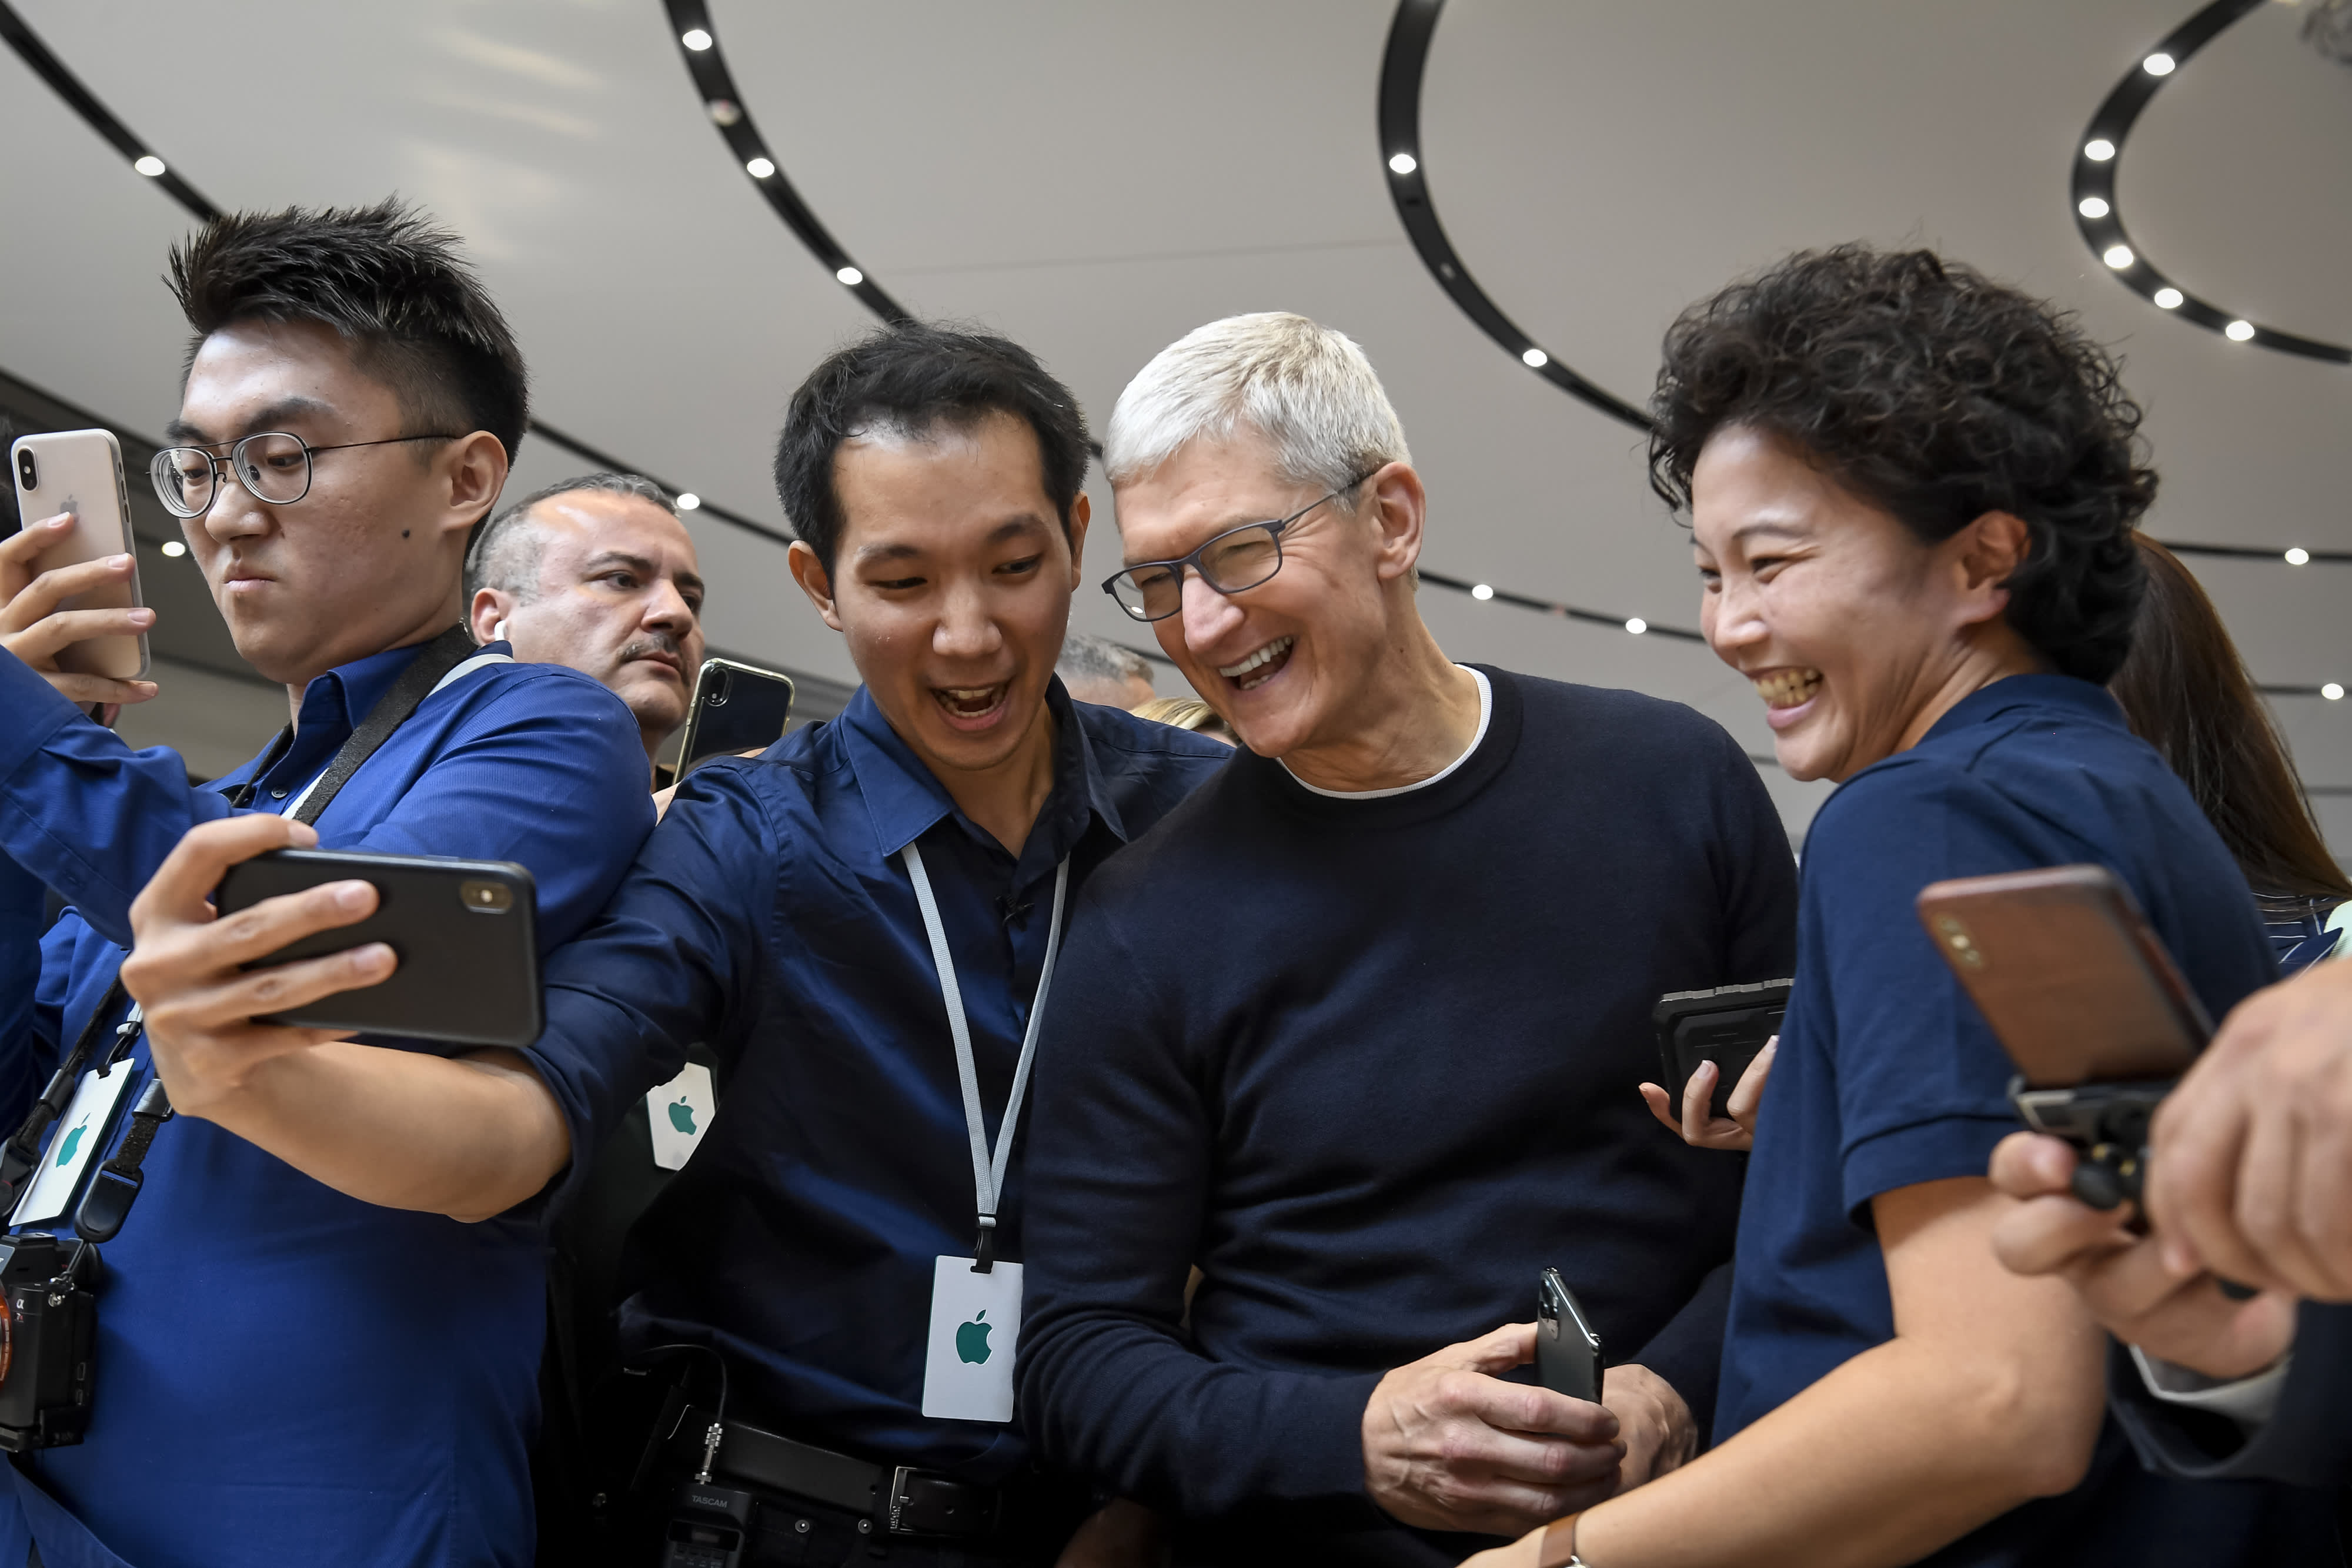 Apple shares upgraded on 'iPhone demand upside'